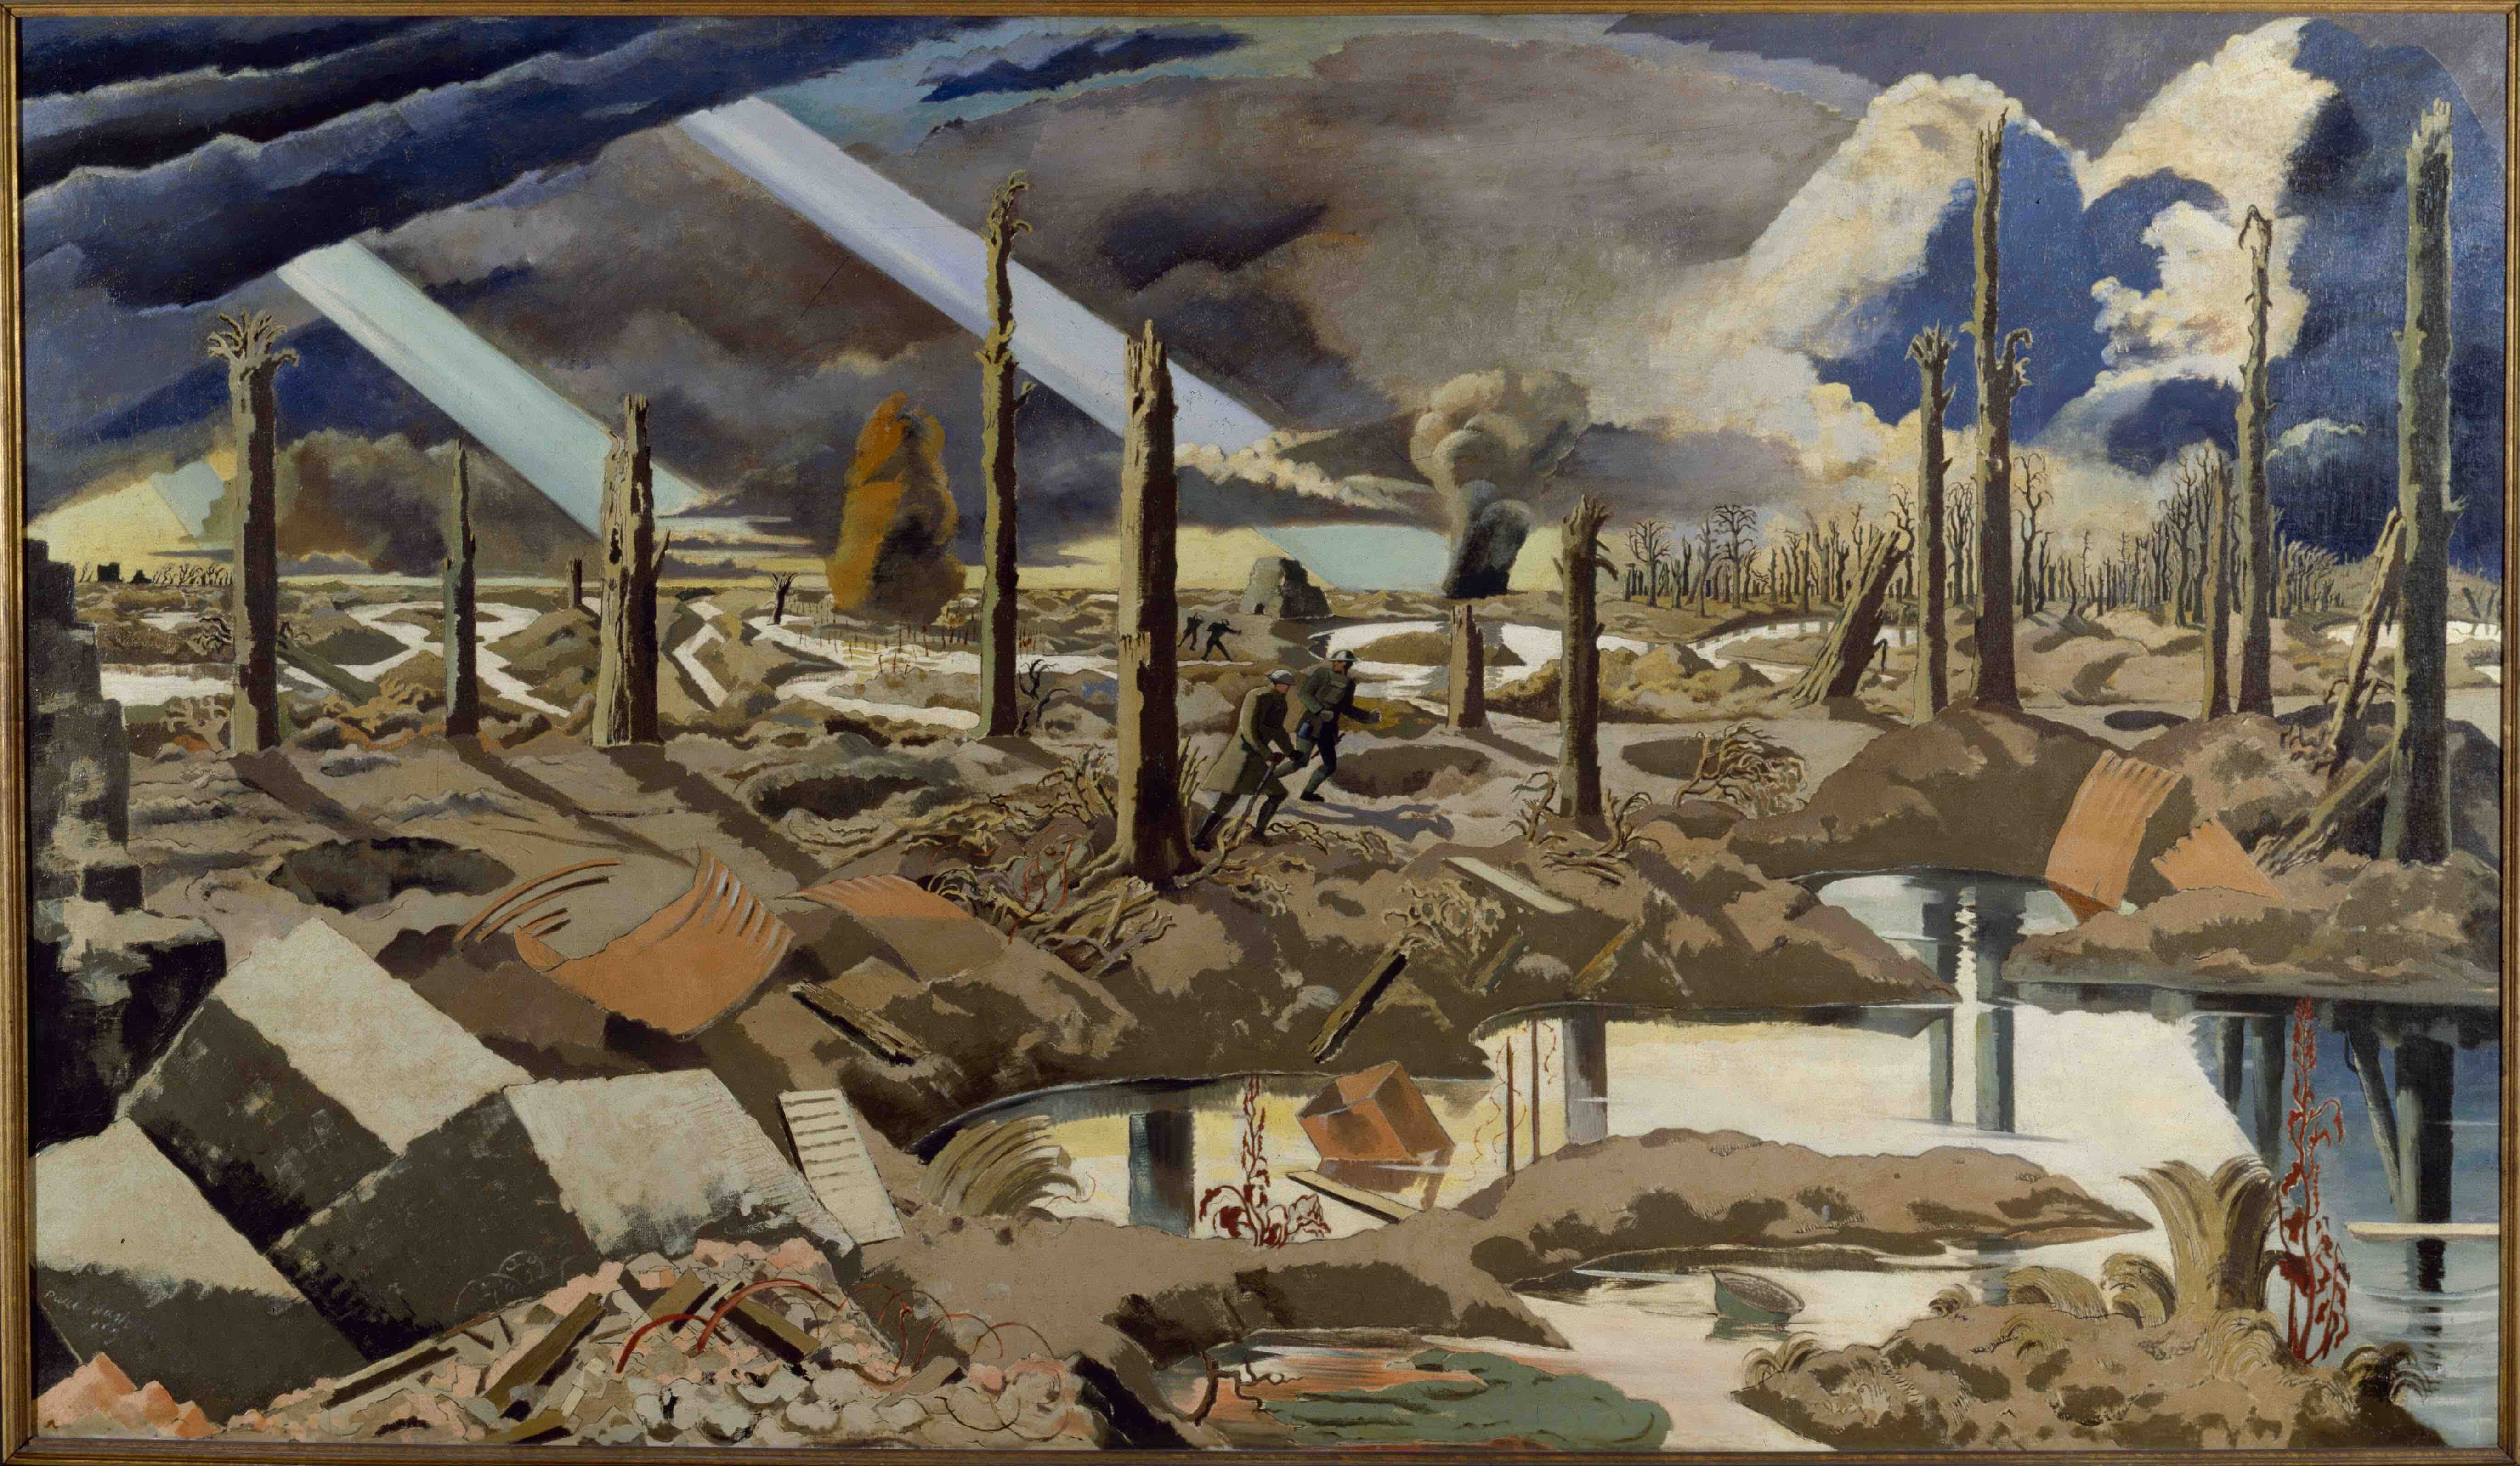 Stanley Donwood S Hallucinatory Visions Of The Future Should